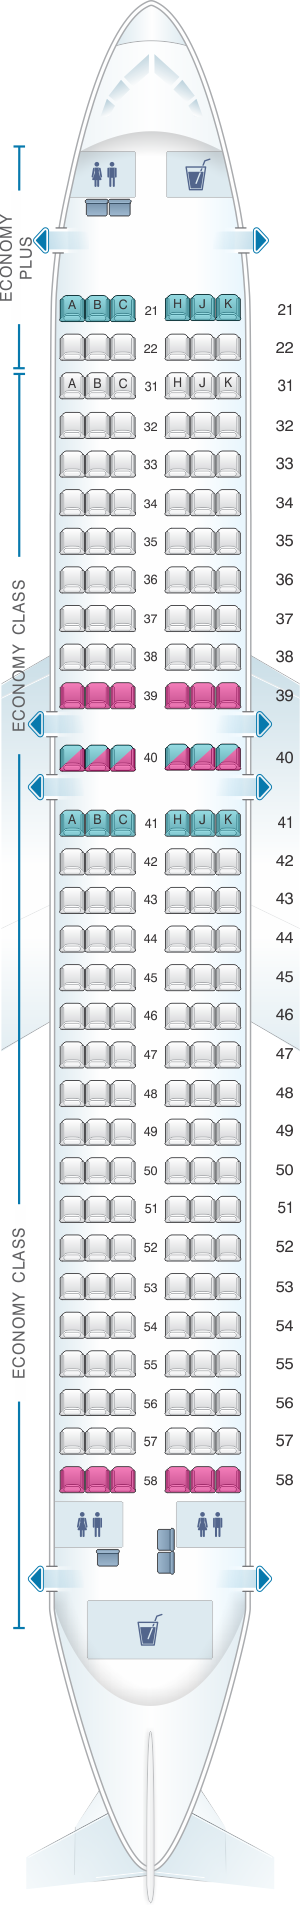 Seat map for Philippine Airlines Airbus A320 200 180PAX